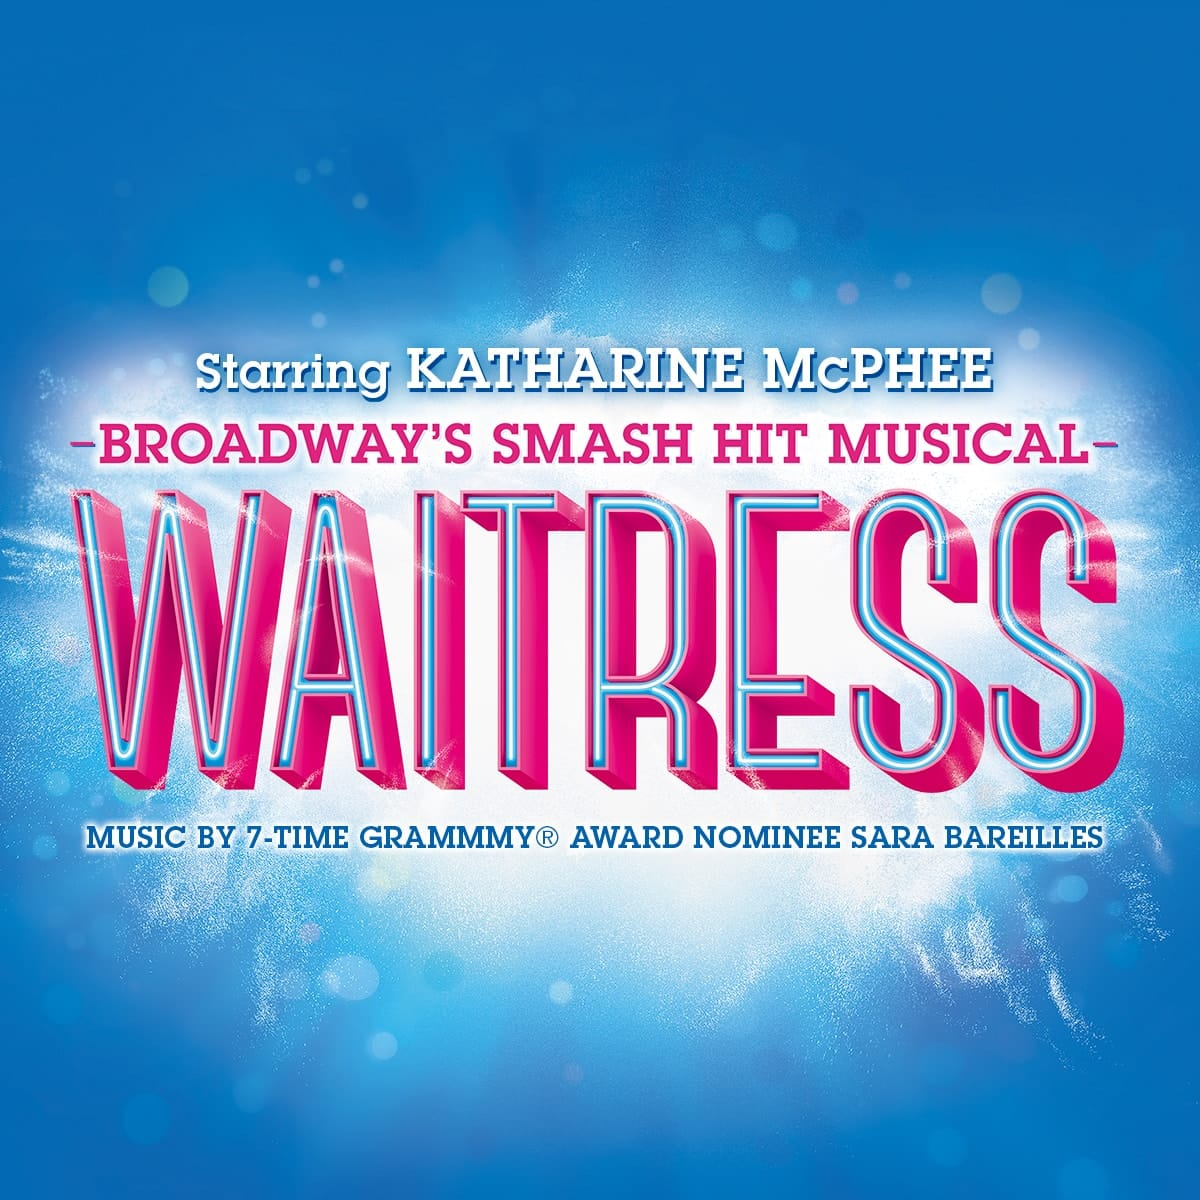 Waitress the musical UK Tour announced and London closing date set.